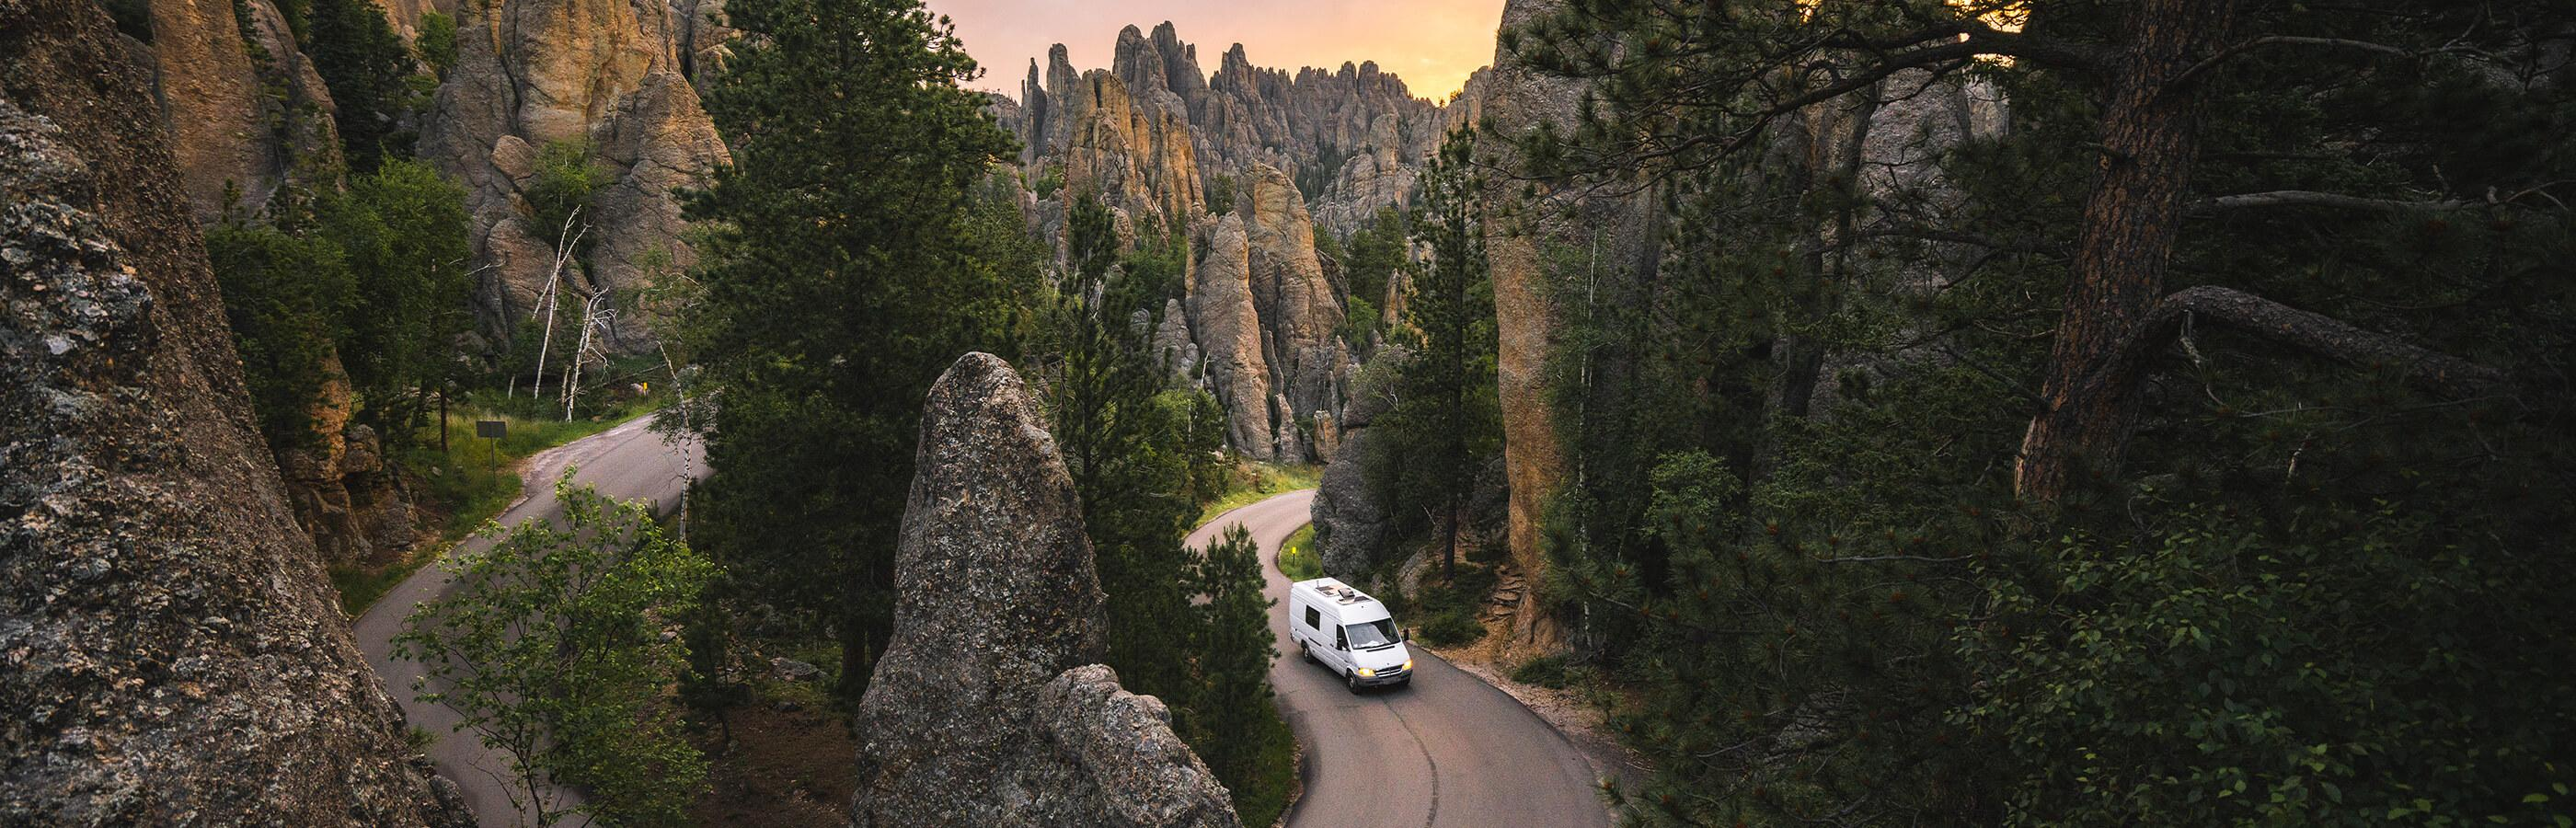 Van Driving Through Needles Highway